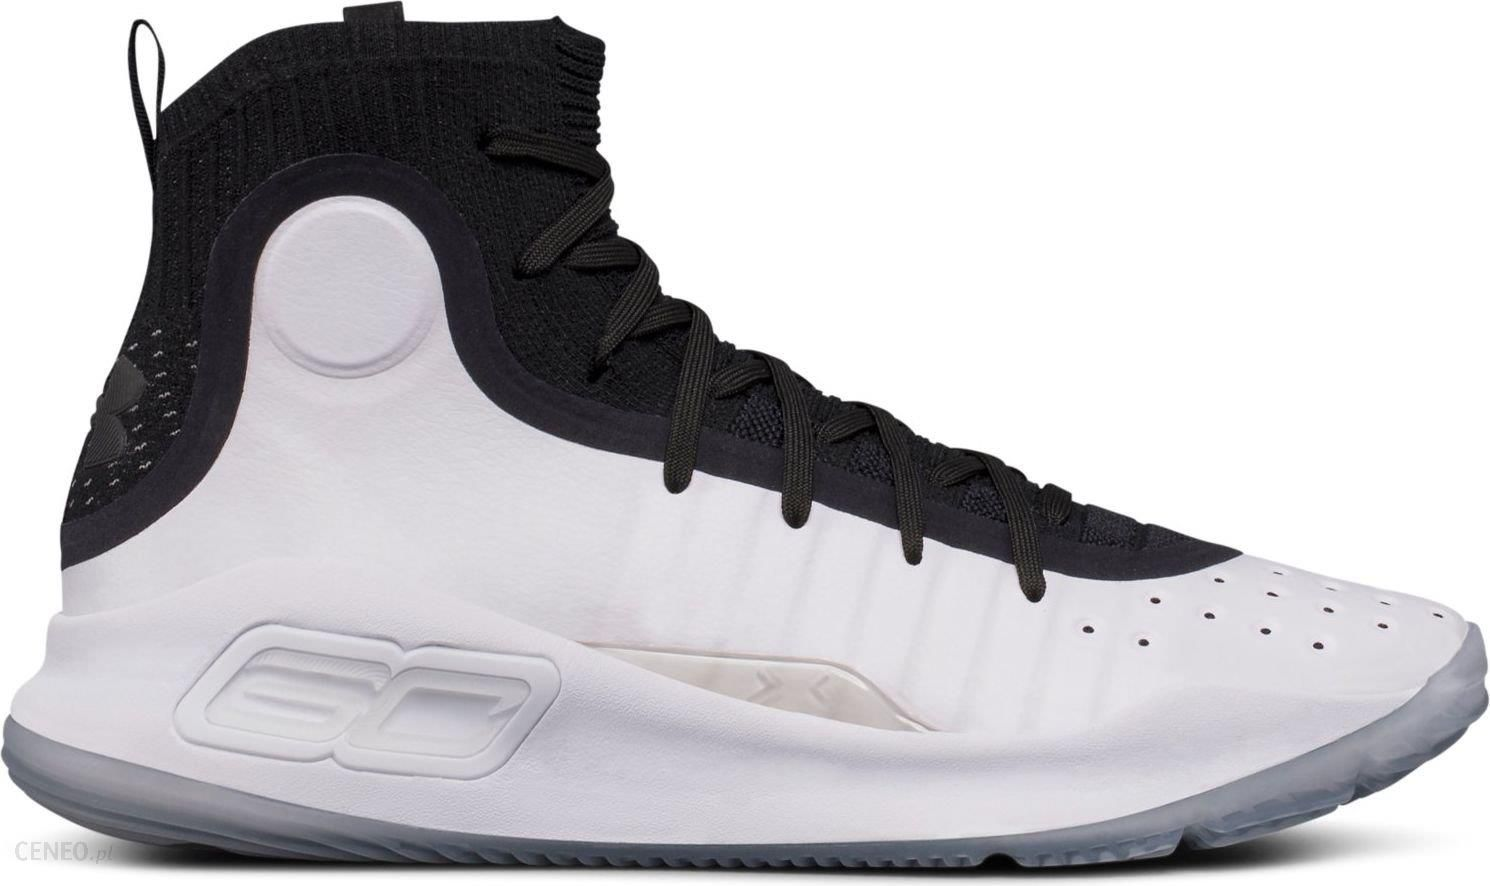 e7f3334d751 ... basketball shoes white blue top deals d7b2a b1e9f  netherlands how to  buy 6adef ee0cf under armour buty mskie curry 4 biao czarne r.